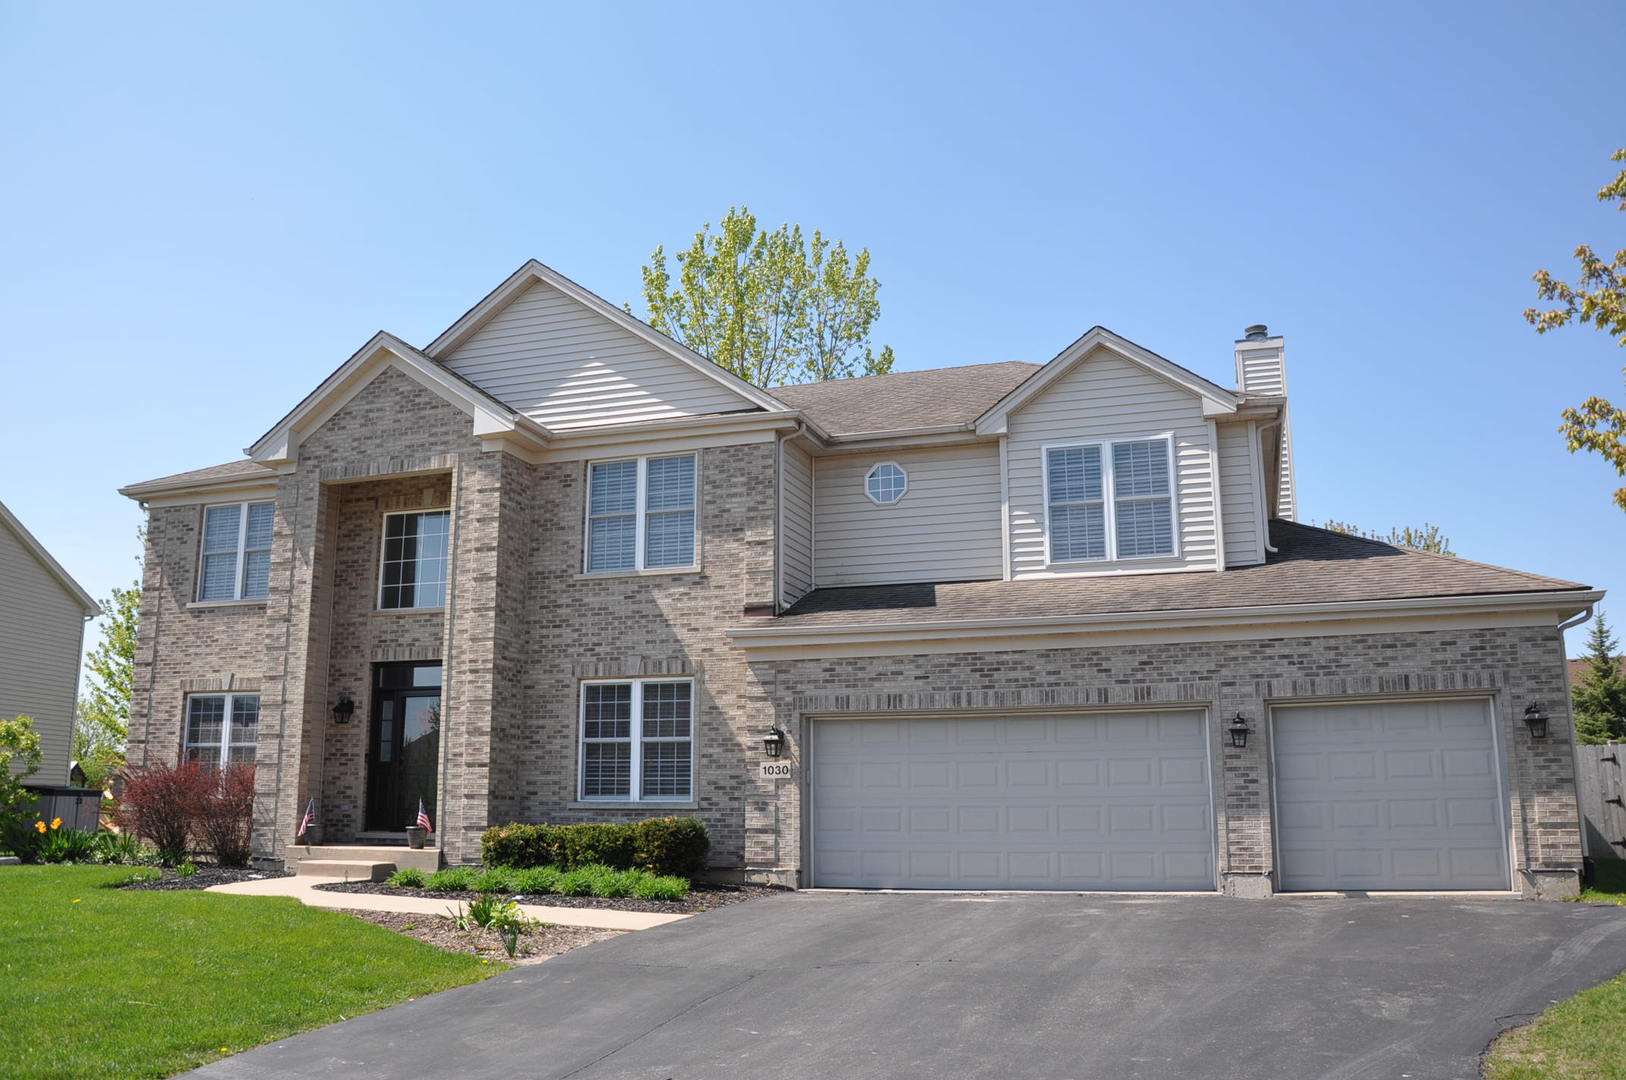 Photo for 1030 Estancia Lane, ALGONQUIN, IL 60102 (MLS # 10393949)